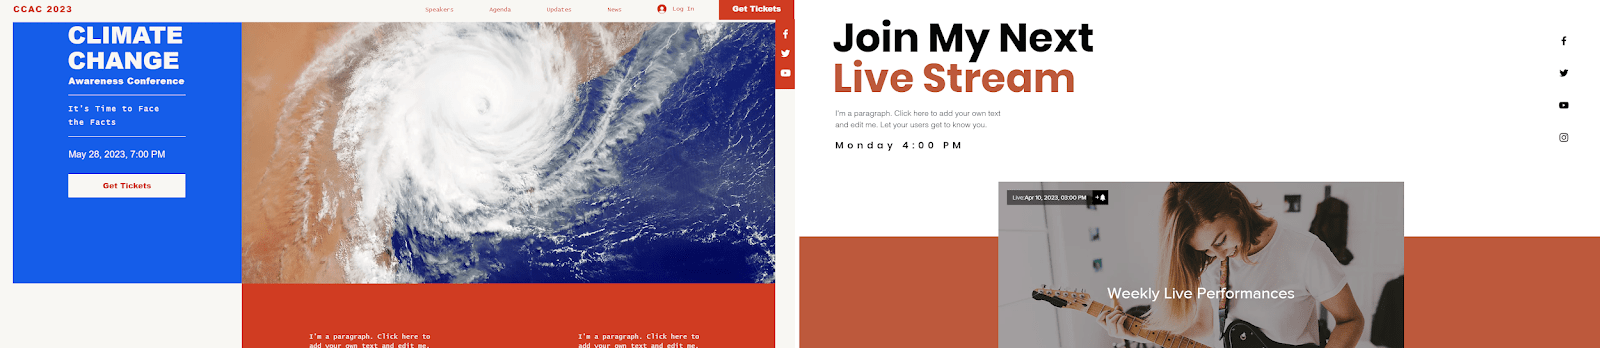 Wix templates to avoid: Climate change conference and live music stream